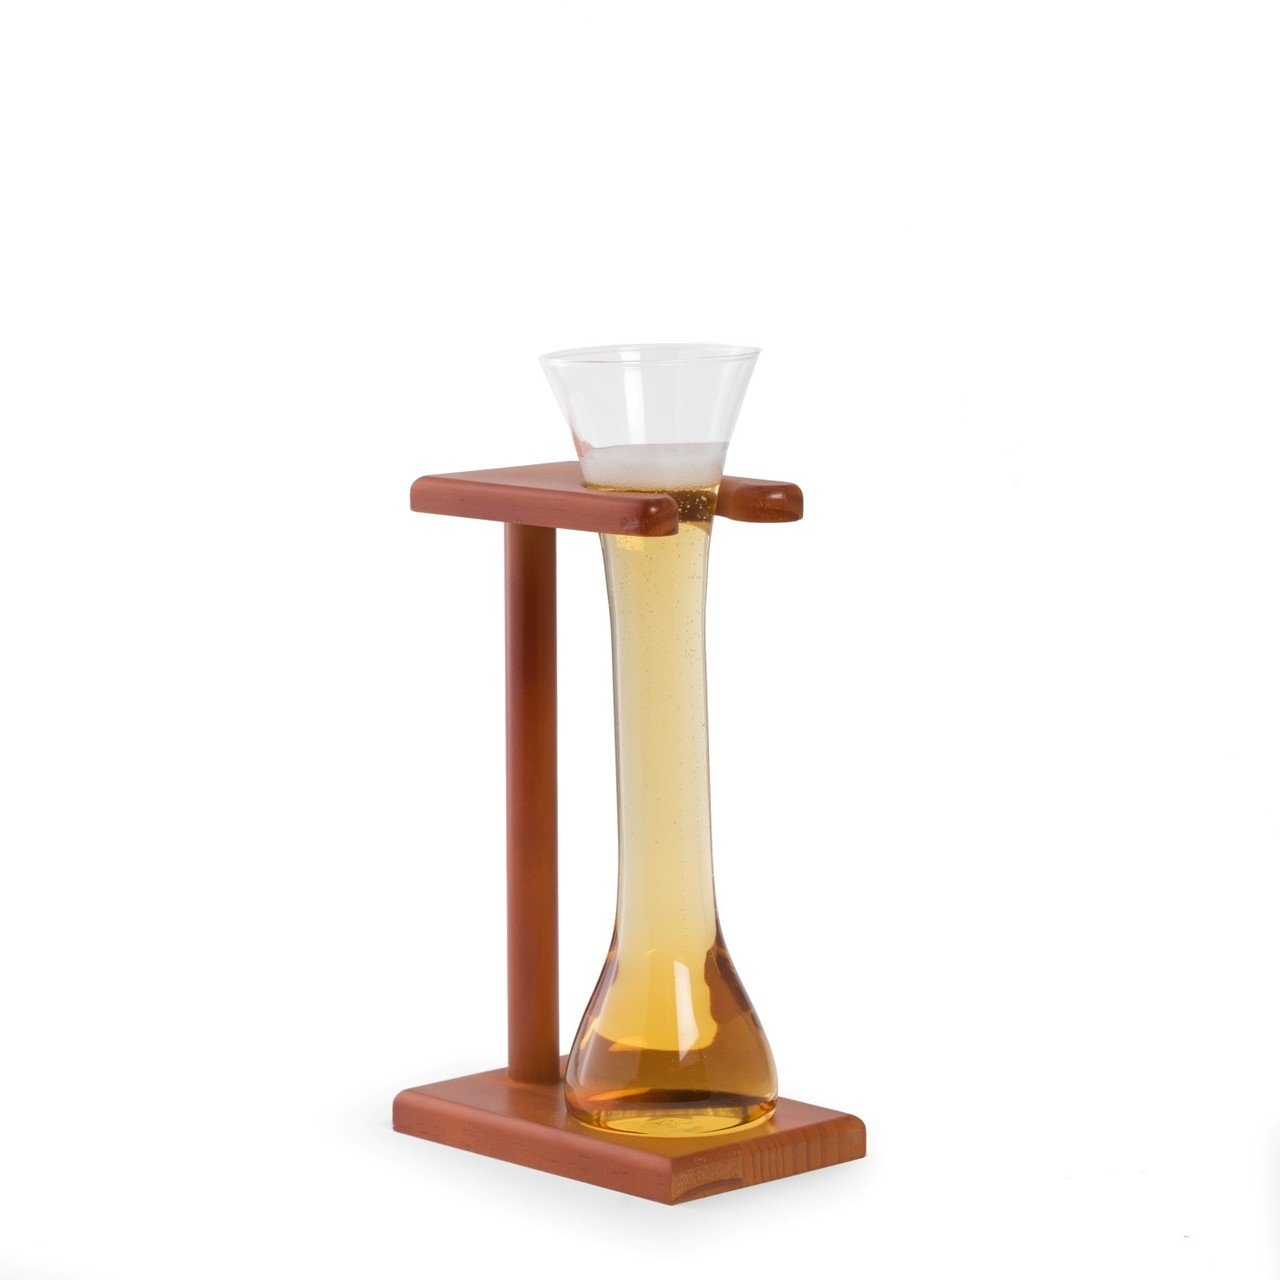 12 oz Bey Berk Quarter Yard of Ale Glass with Wooden Stand